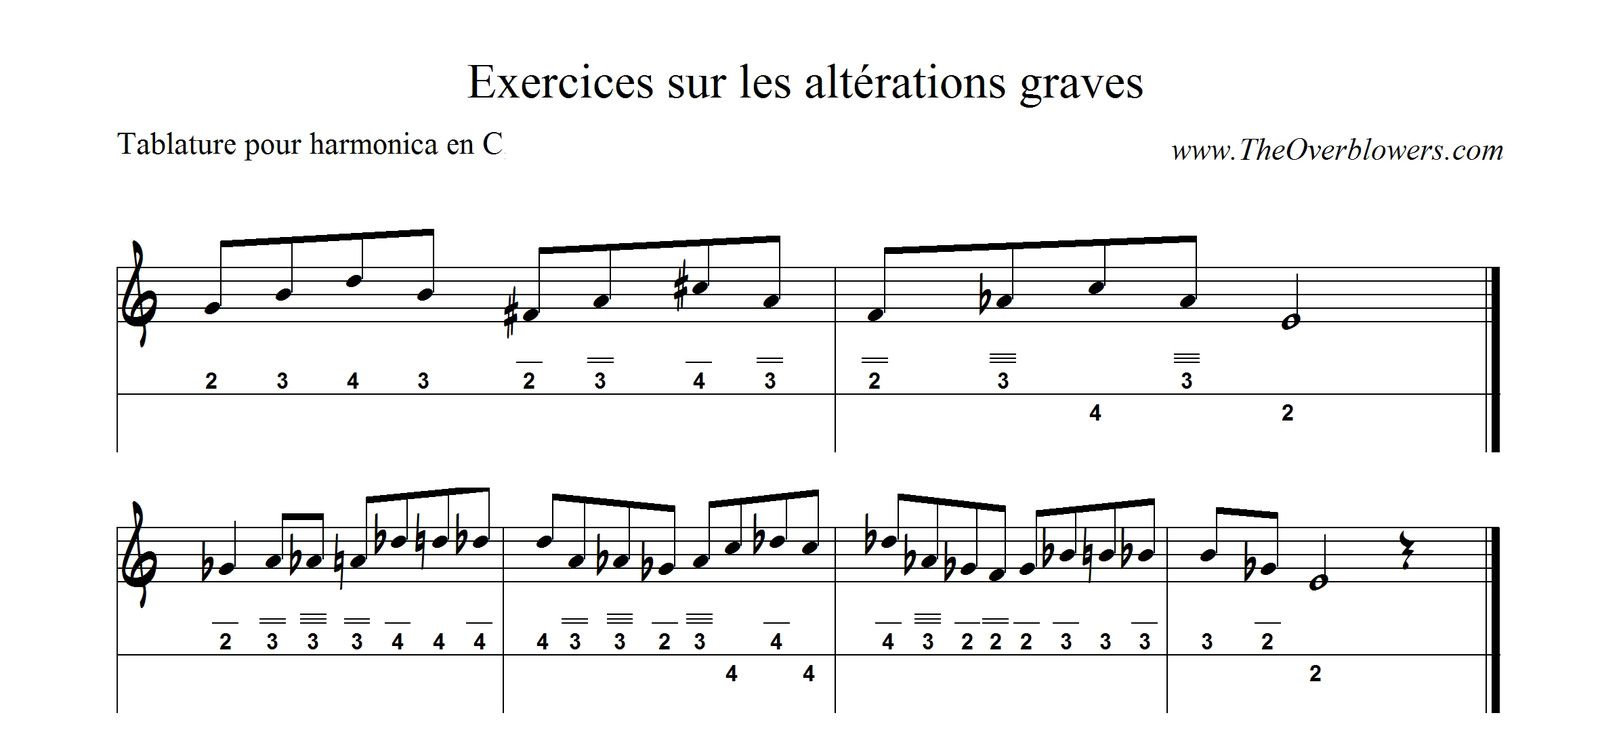 Exercices d'altérations